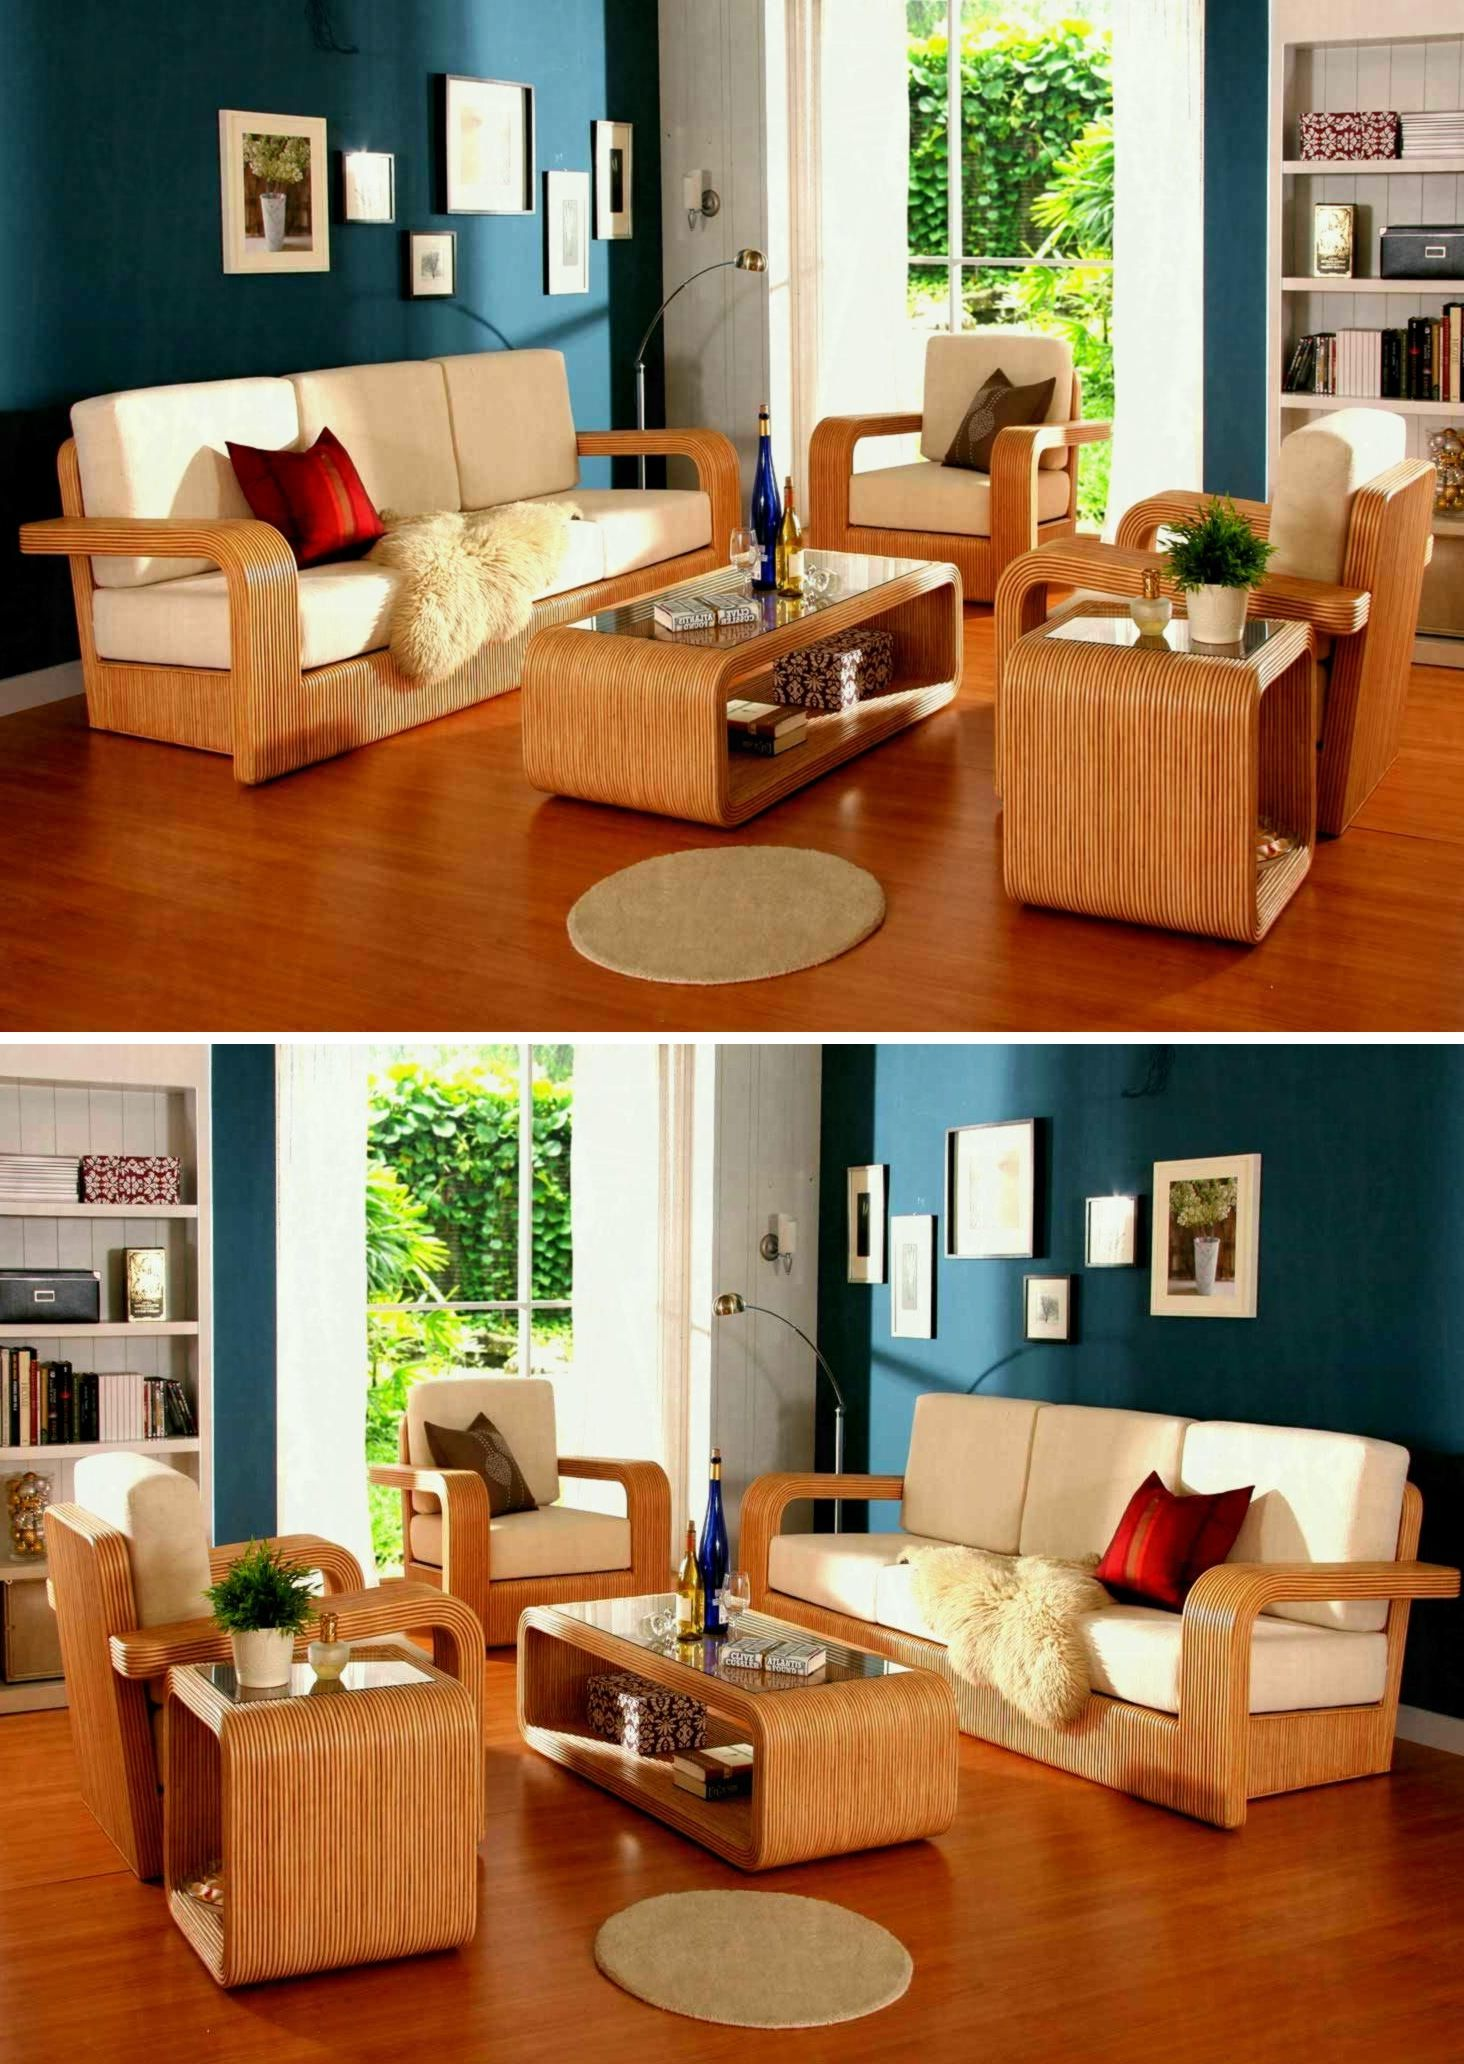 Latest Wooden Sofa Set Designs 2019 Best Sofa Models For Your Home Wooden Sofa Set Designs Wooden Sofa Set Sofa Set Designs